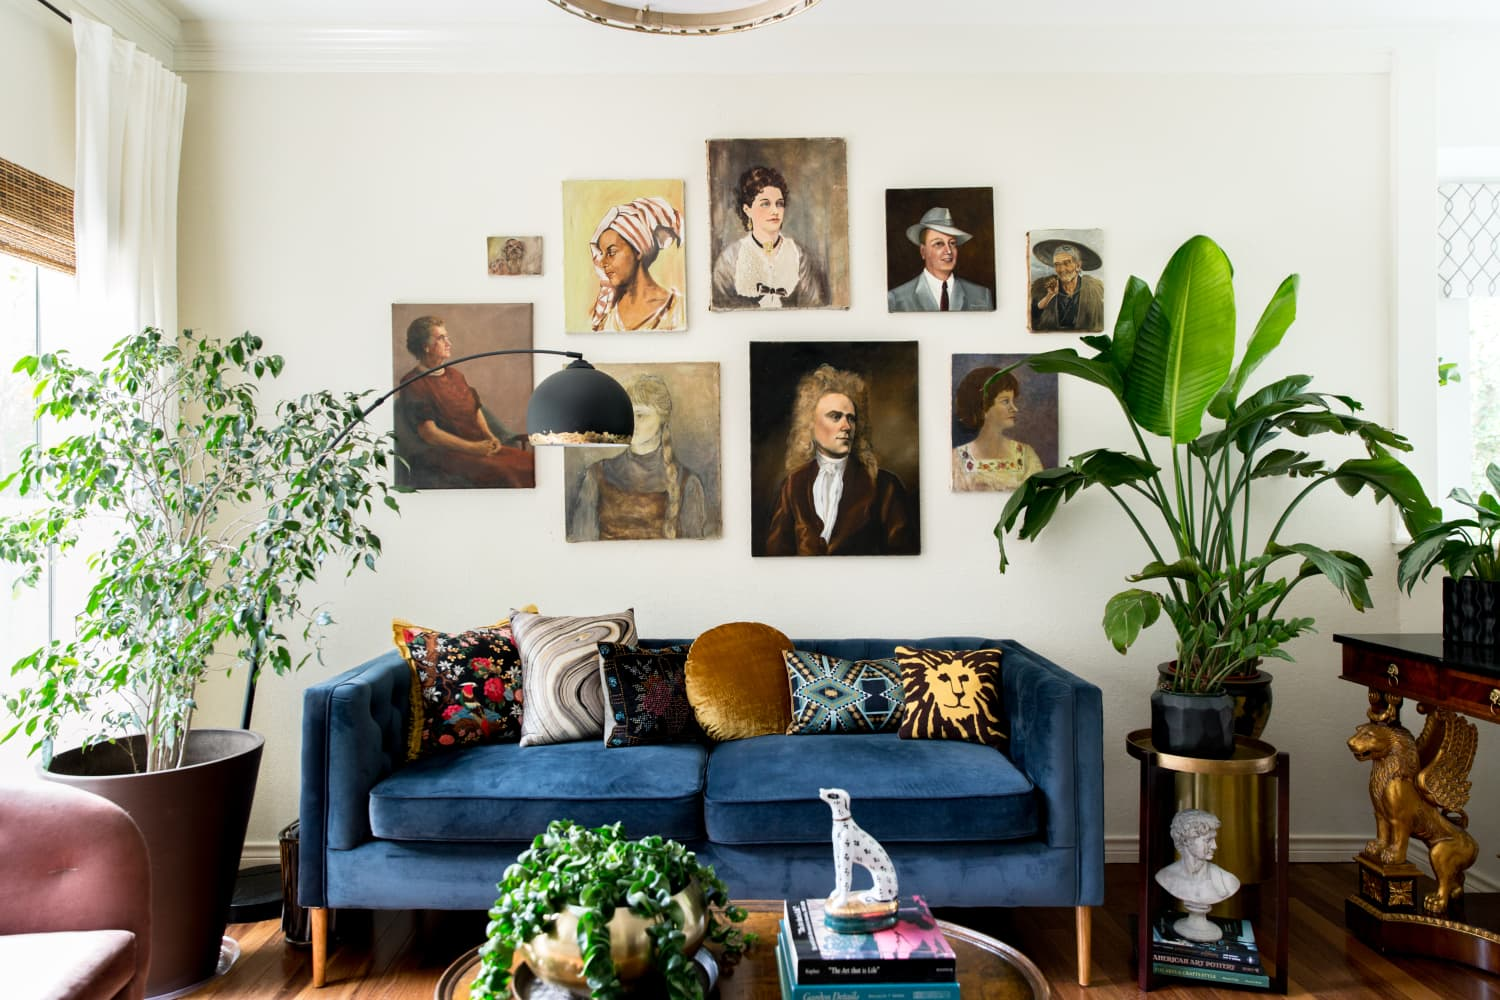 How to Make Your Home Photographable, According to an Interior Stylist